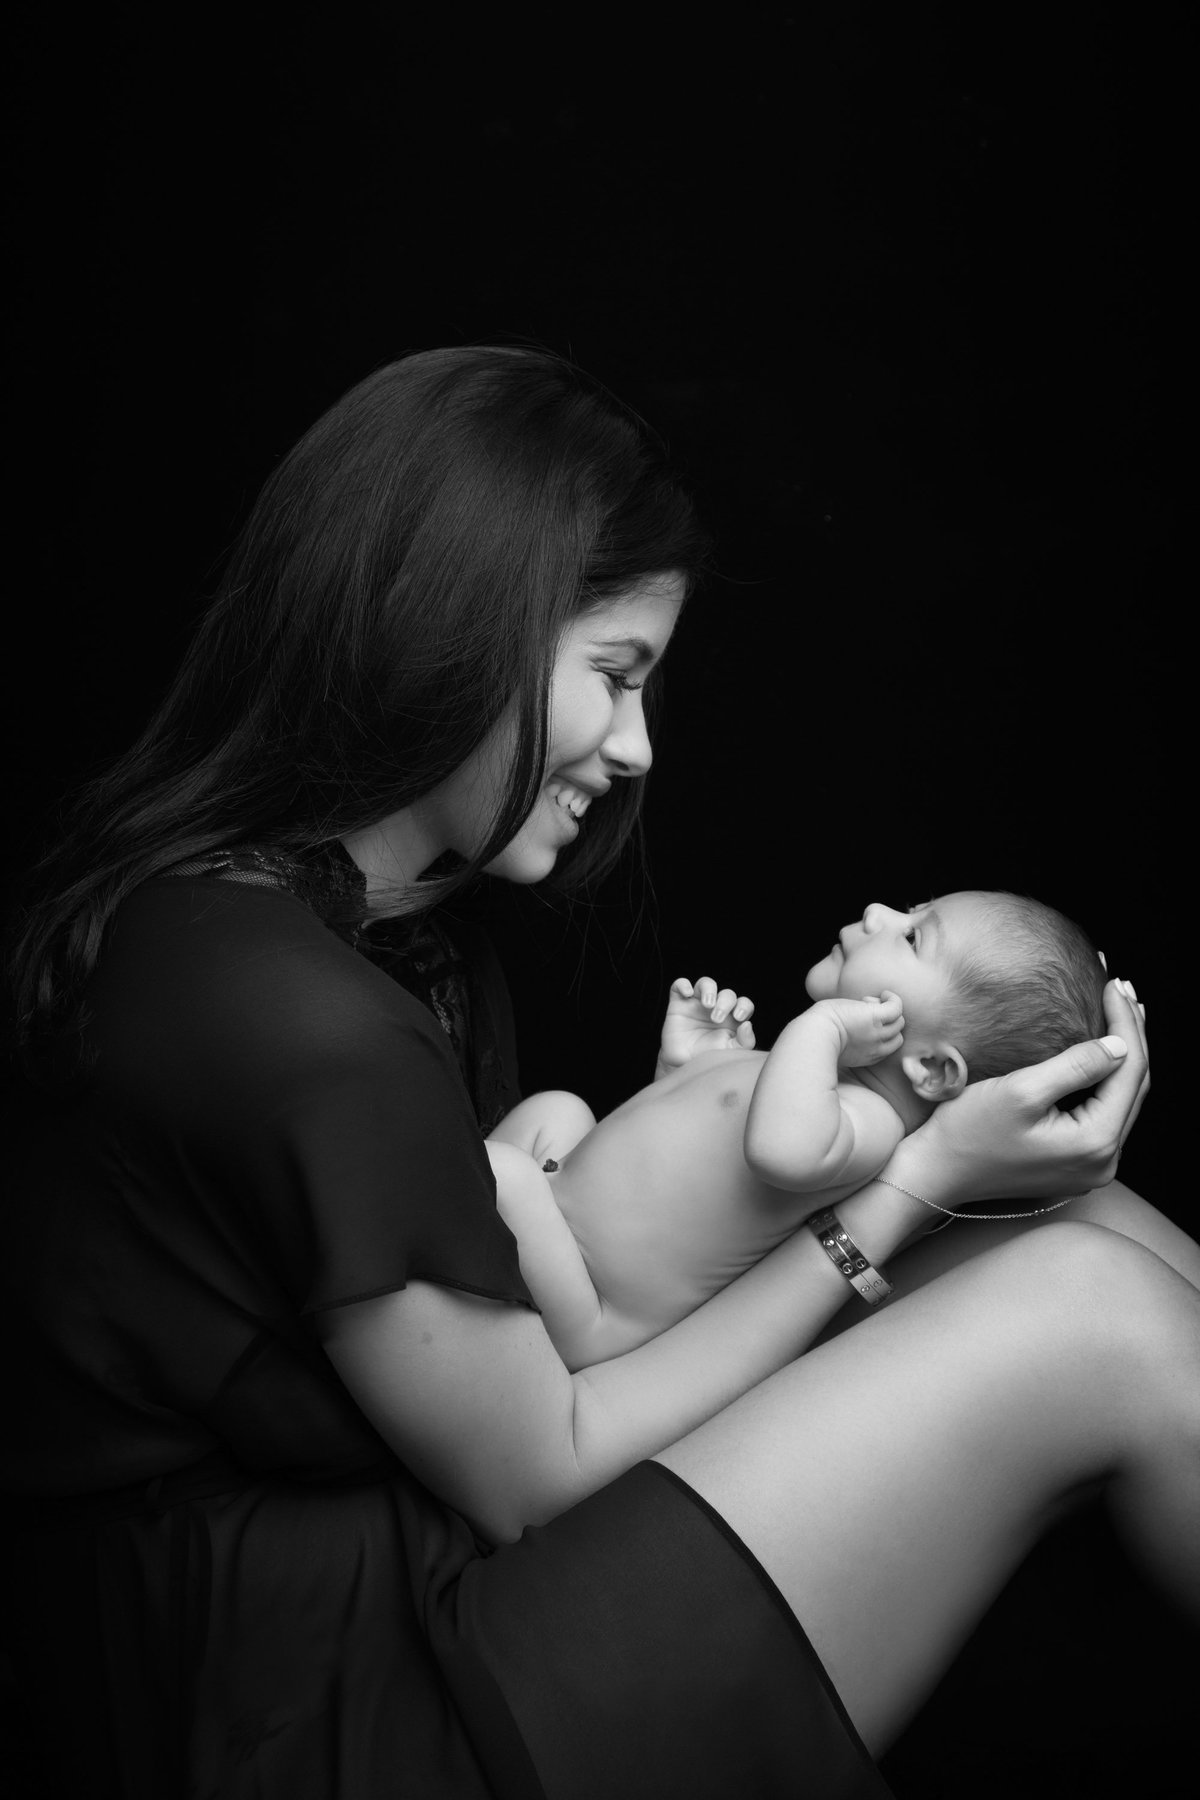 maternity-photography-miami-2B0A0090sf-bw